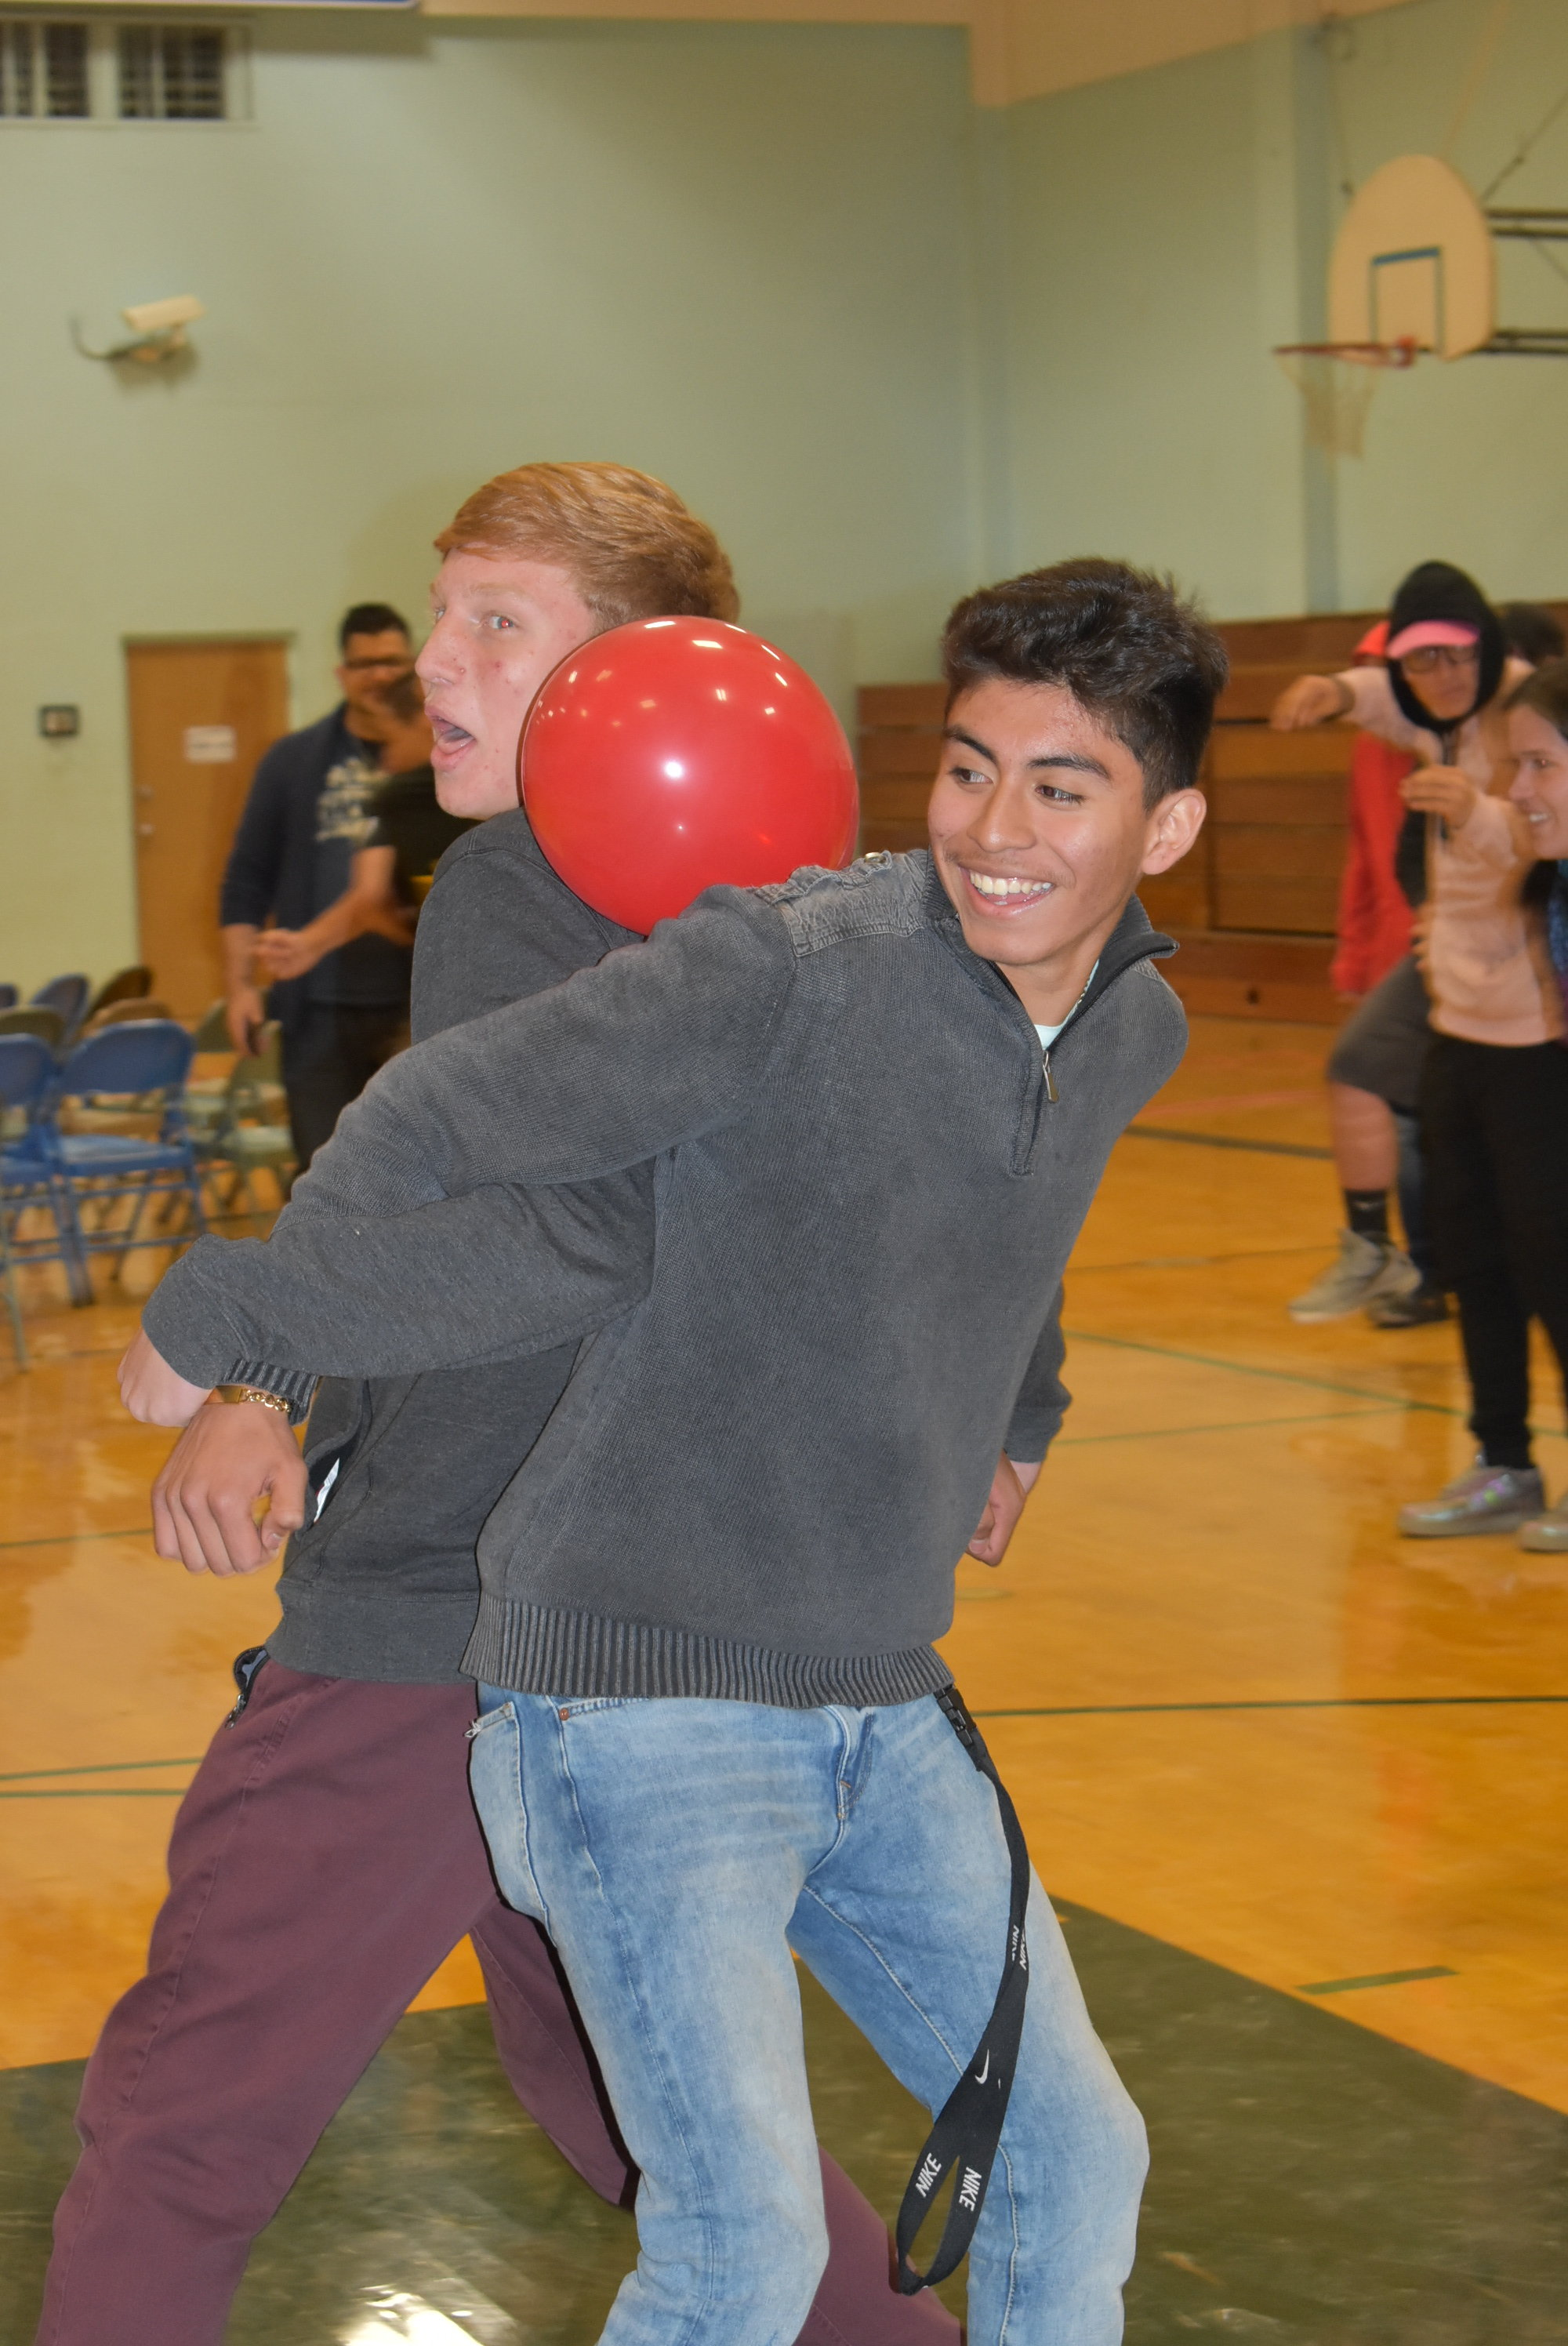 Two students standing back to back with their arms linked look on as a red balloon balances precariously between their backs. One student grins while the other carries a look of concerned focus.